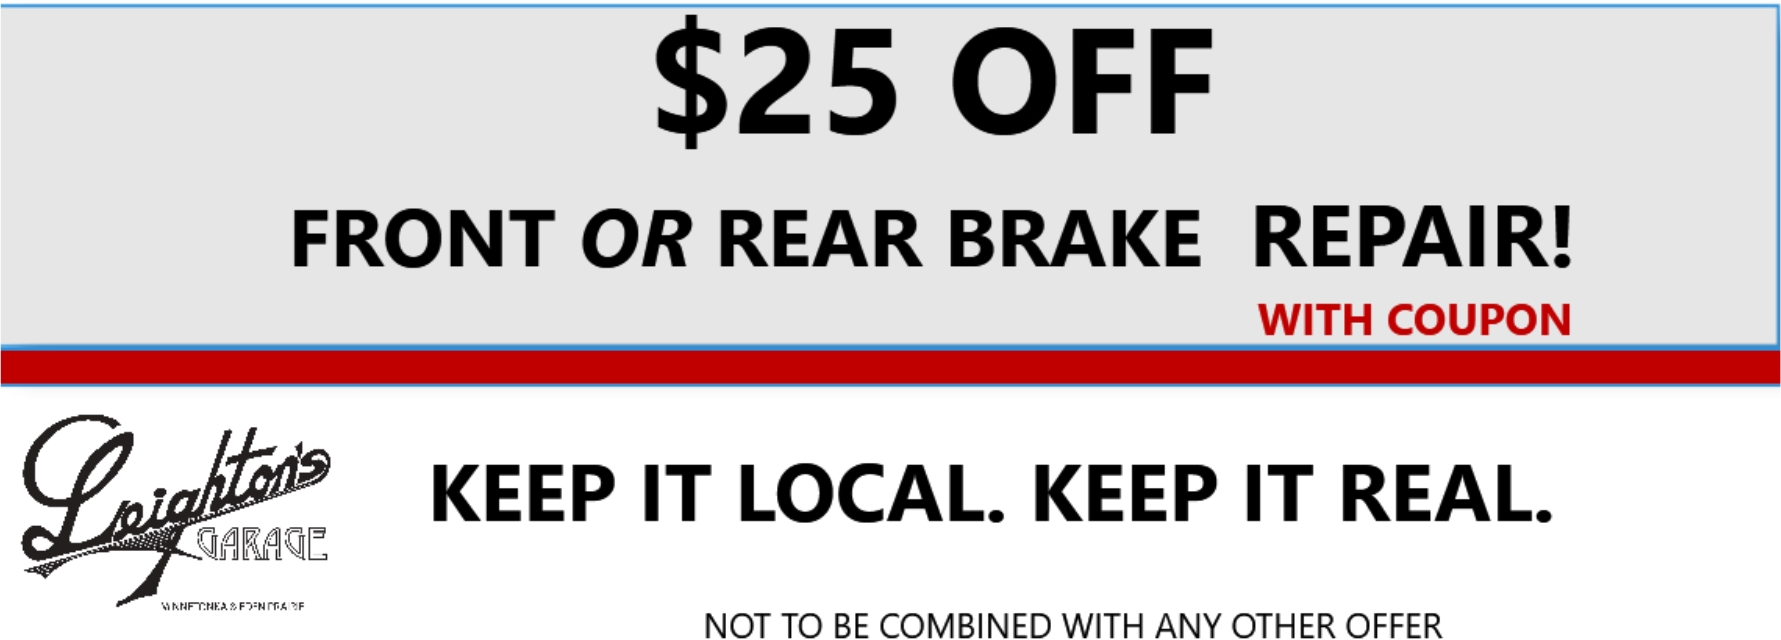 $25 OFF FRONT OR REAR BRAKES